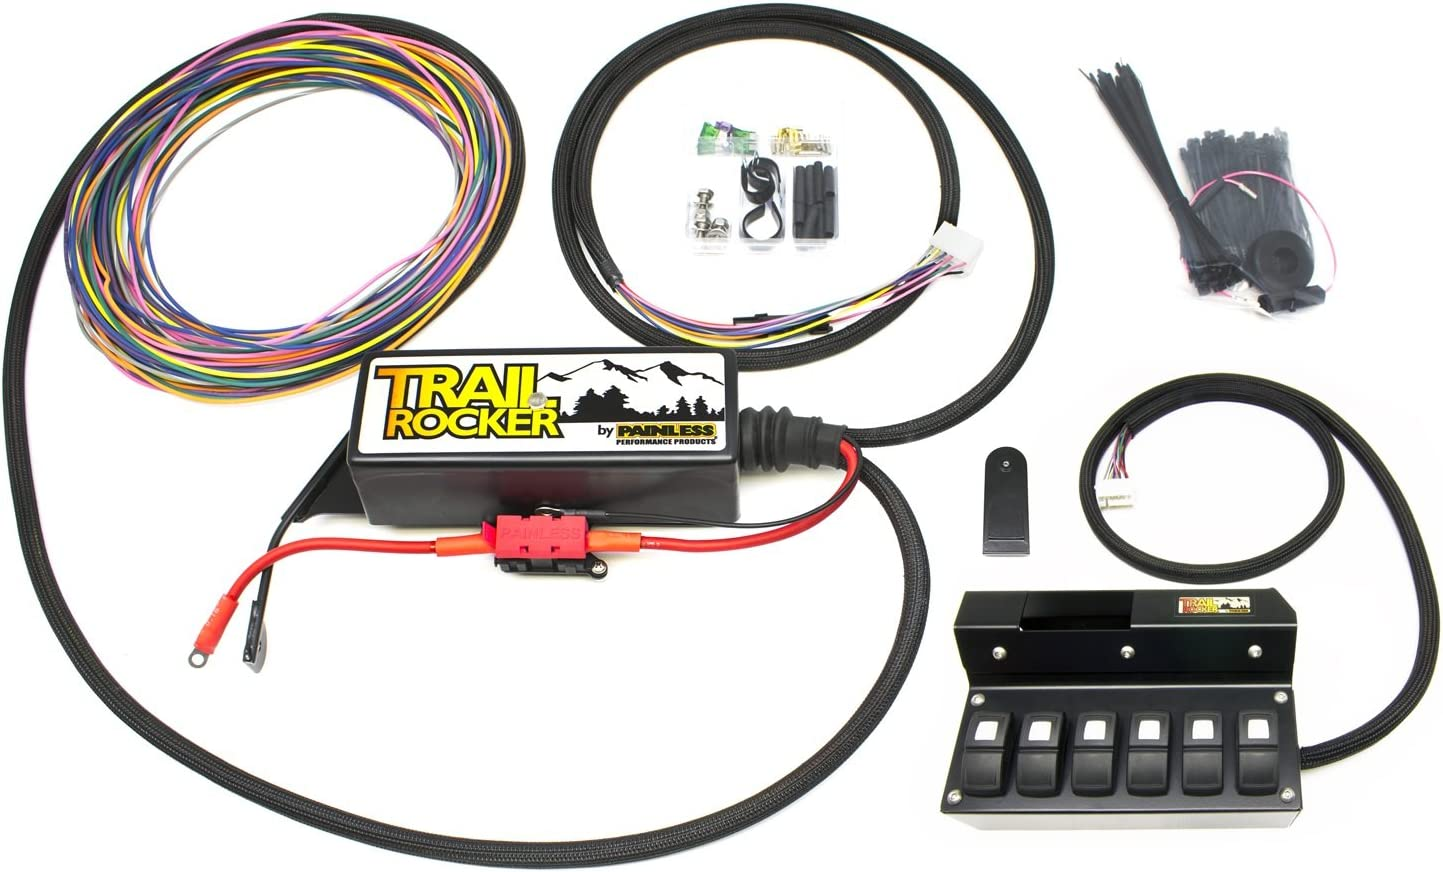 Painless Performance 57004 Trail Max 81% Miami Mall OFF Rocker for System 2009-2018 Jee